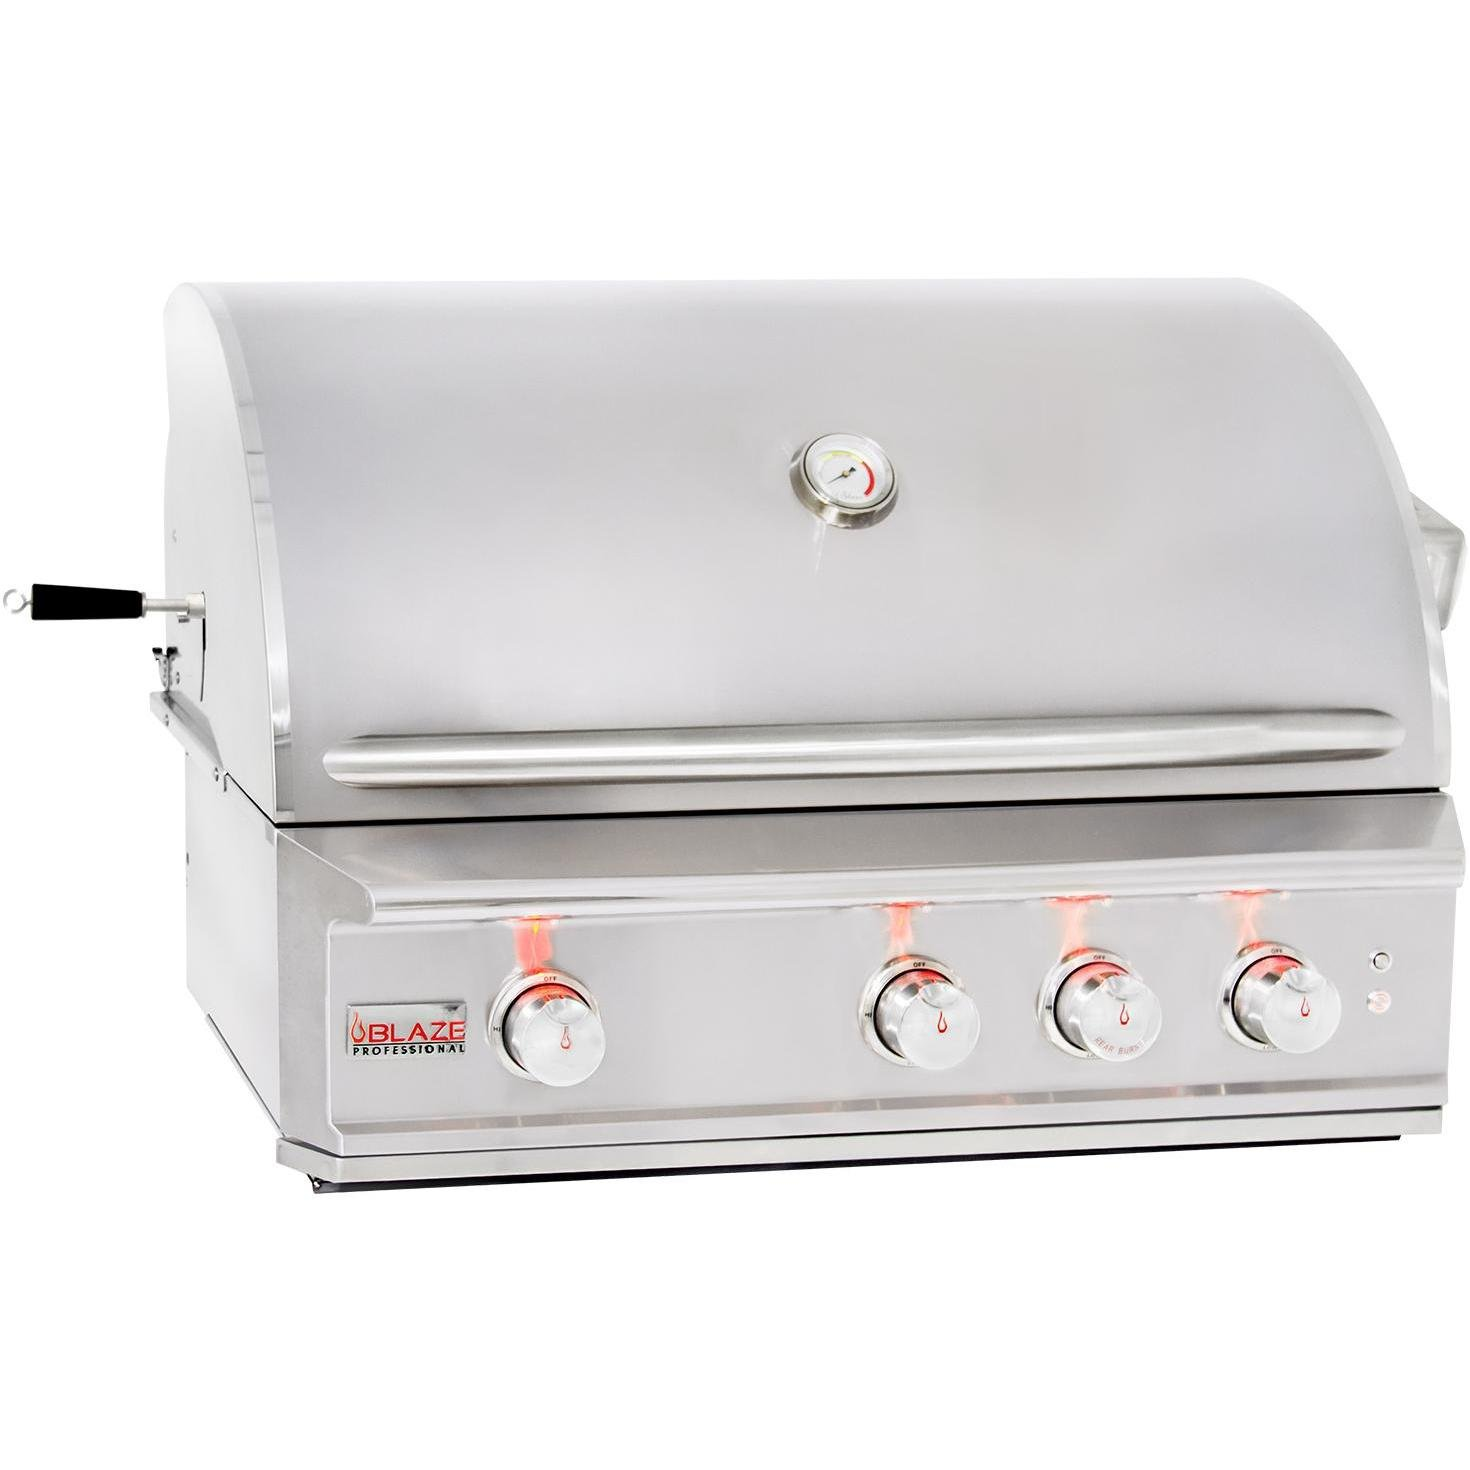 34'' Professional Grill with 3 Burners Fuel Type: Propane by Blaze Grills